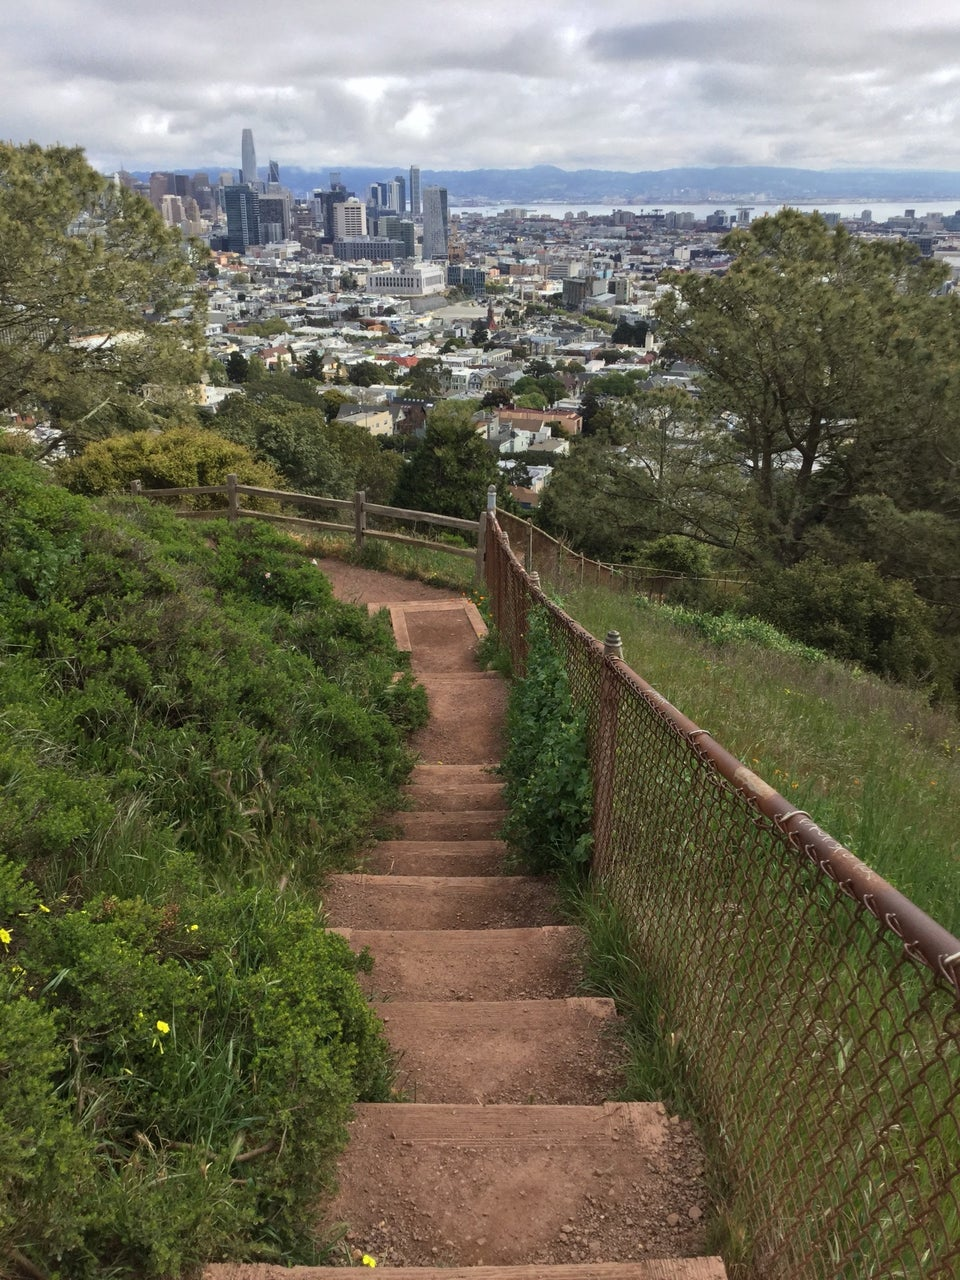 Overcast skies over a clear view of downtown San Francisco, and the East Bay in the distance, dirt steps descending in the foreground, green bushes on both sides, with a half-height rusting chain-link fence on the right.